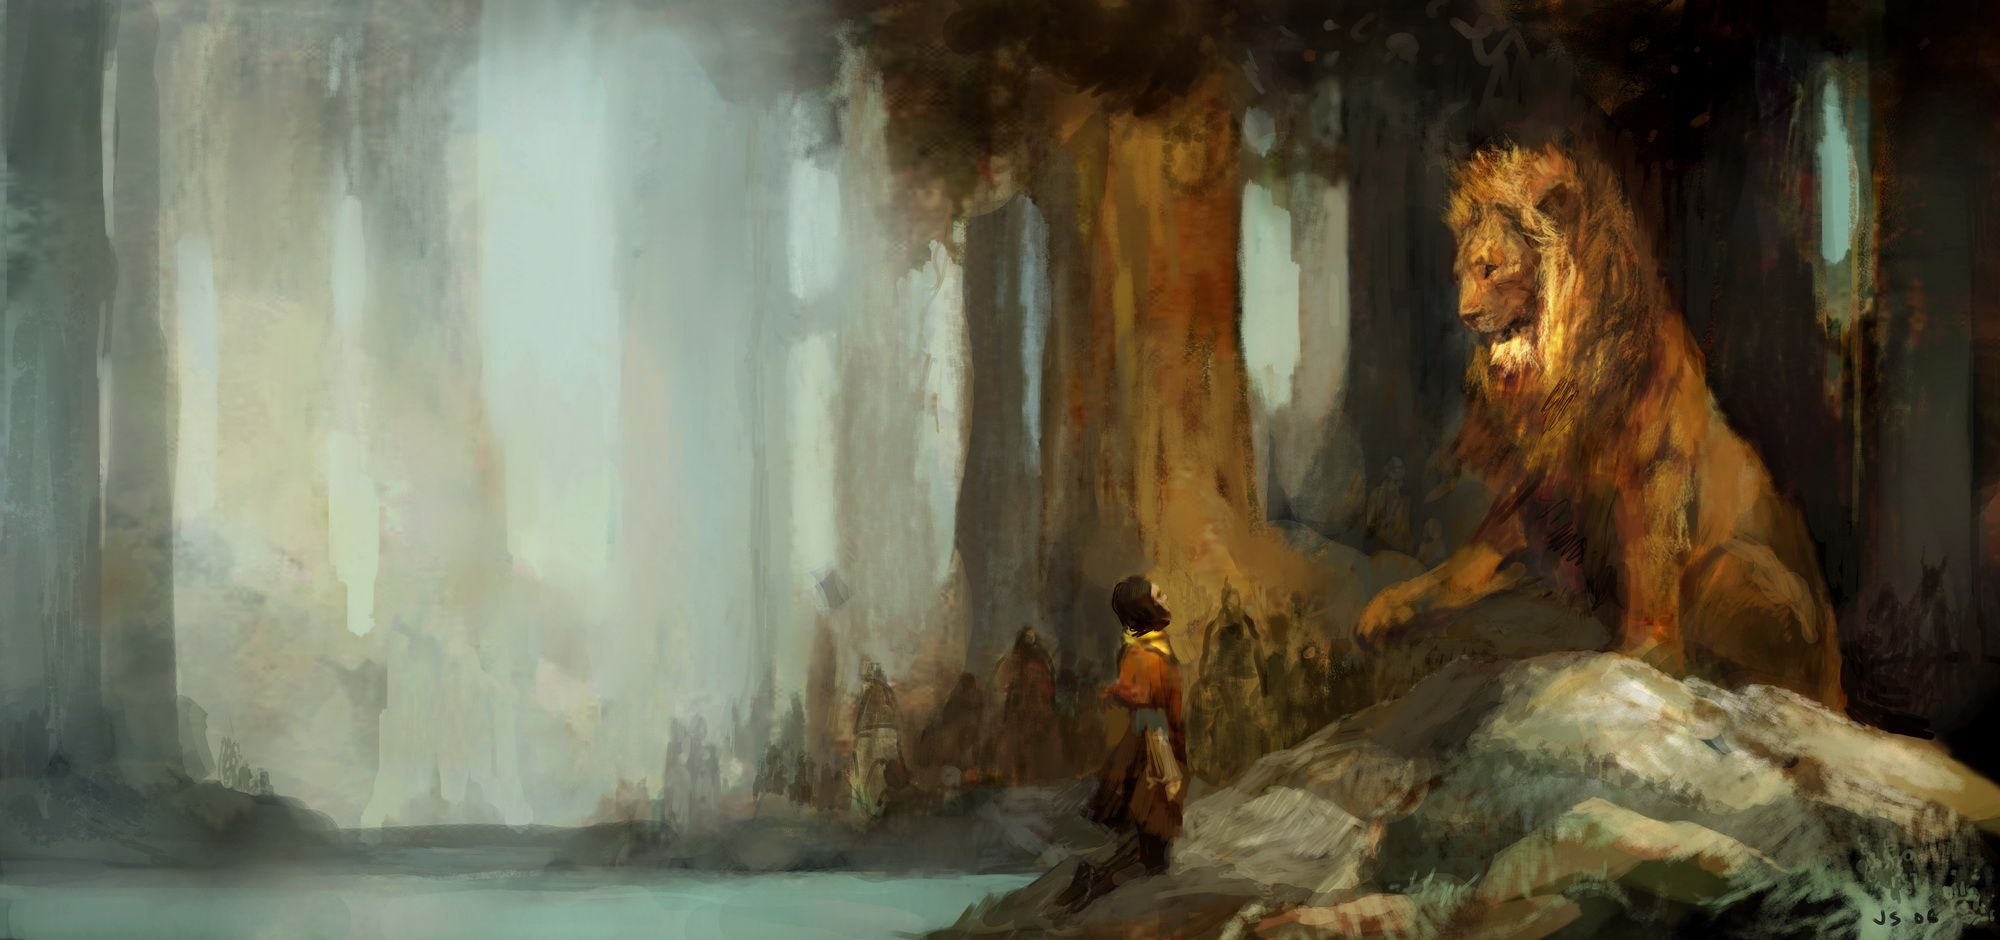 Narnia Concept Art by Justin Sweet